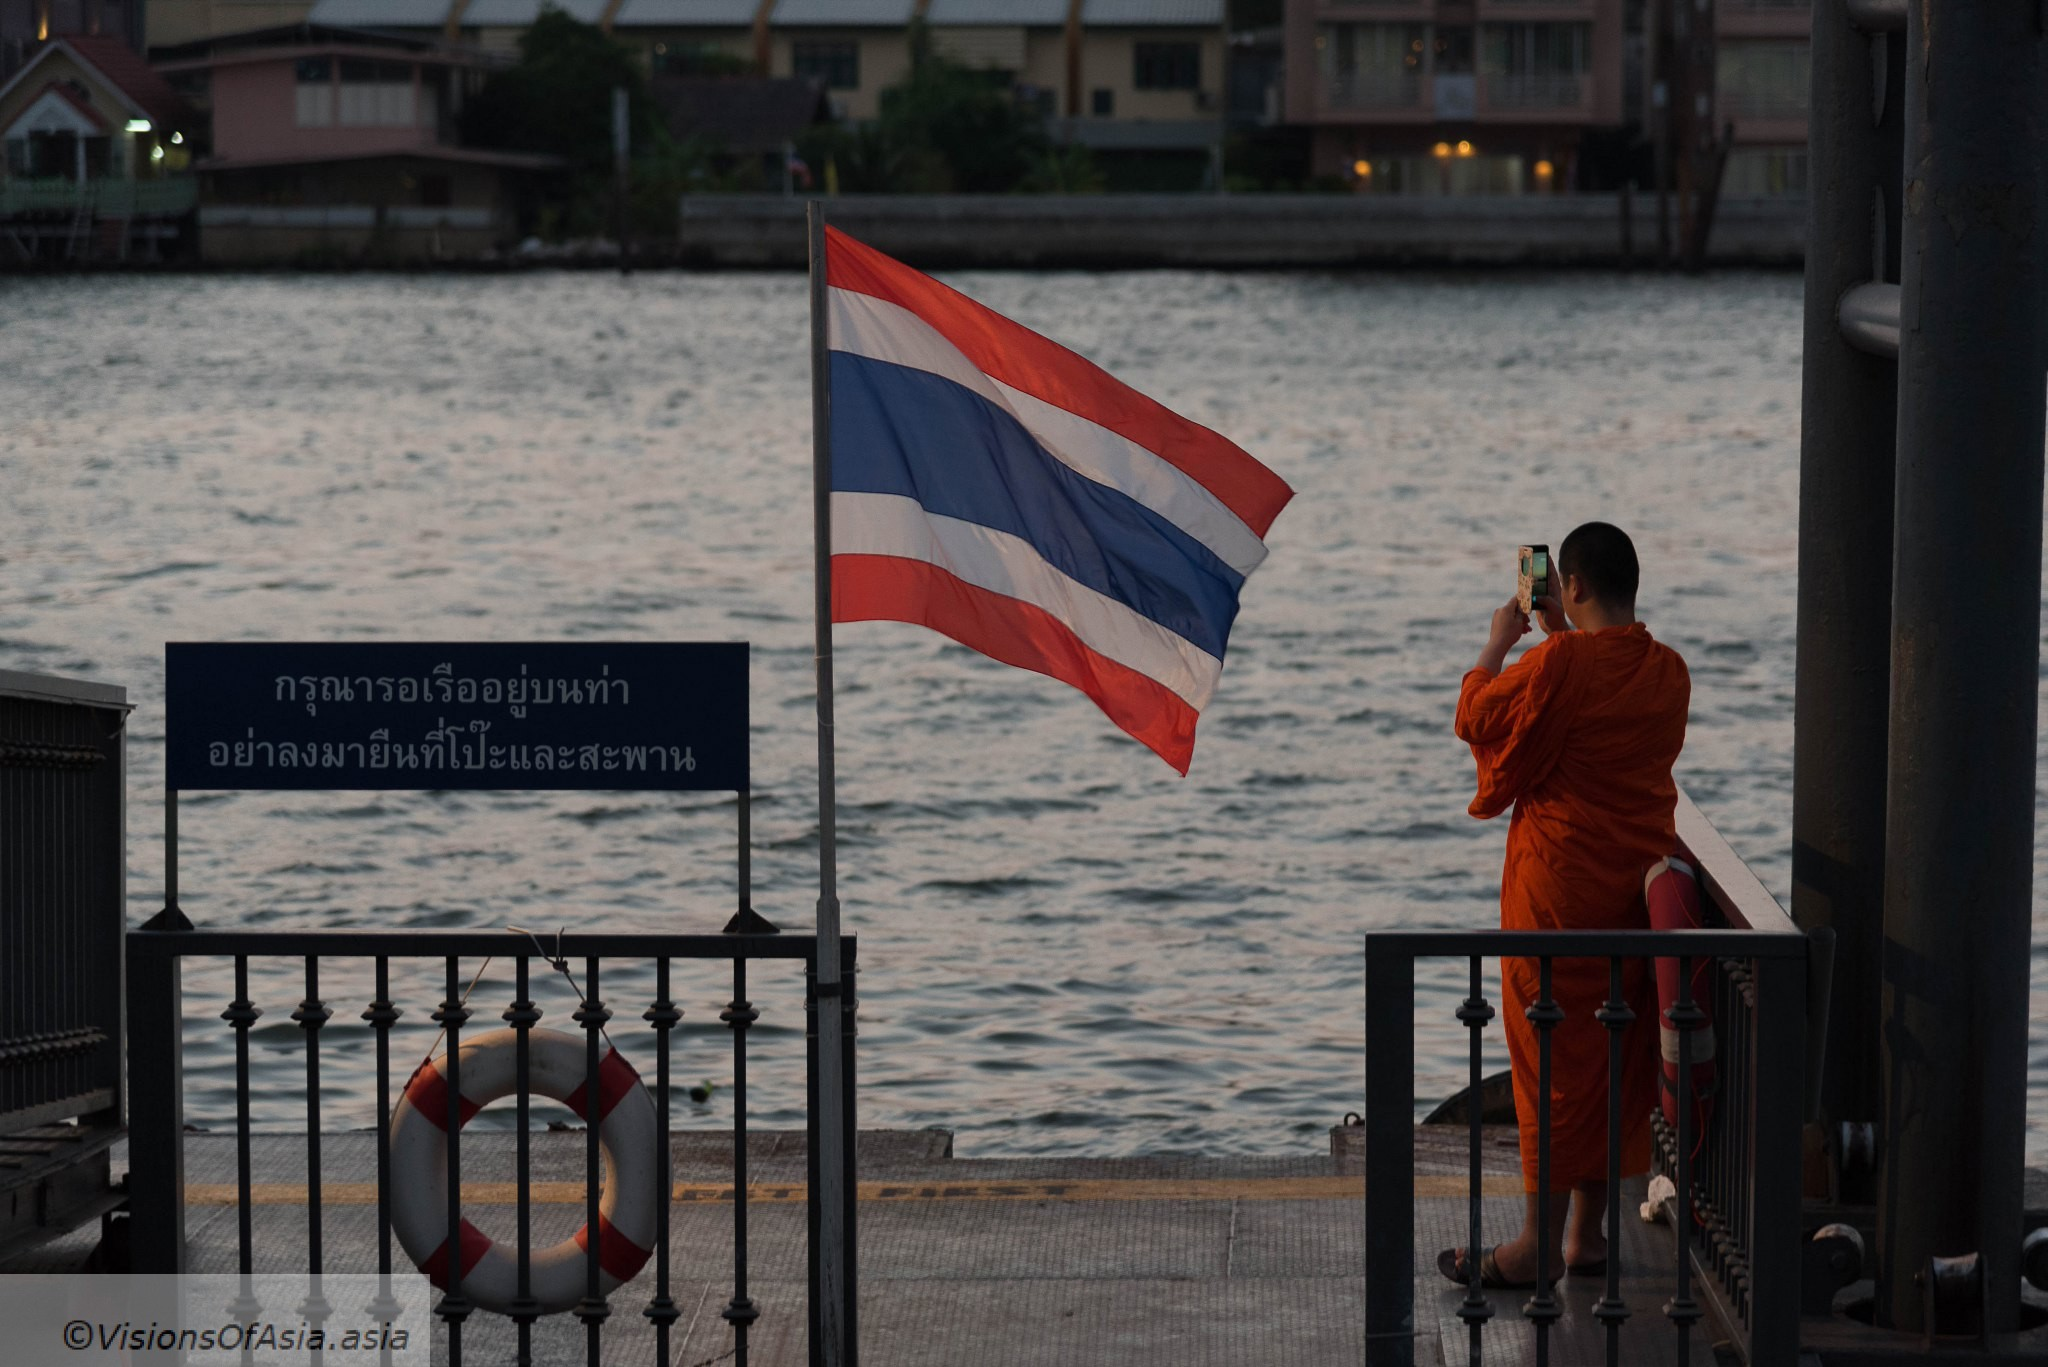 Thailand today: a monk, a smartphone and a flag